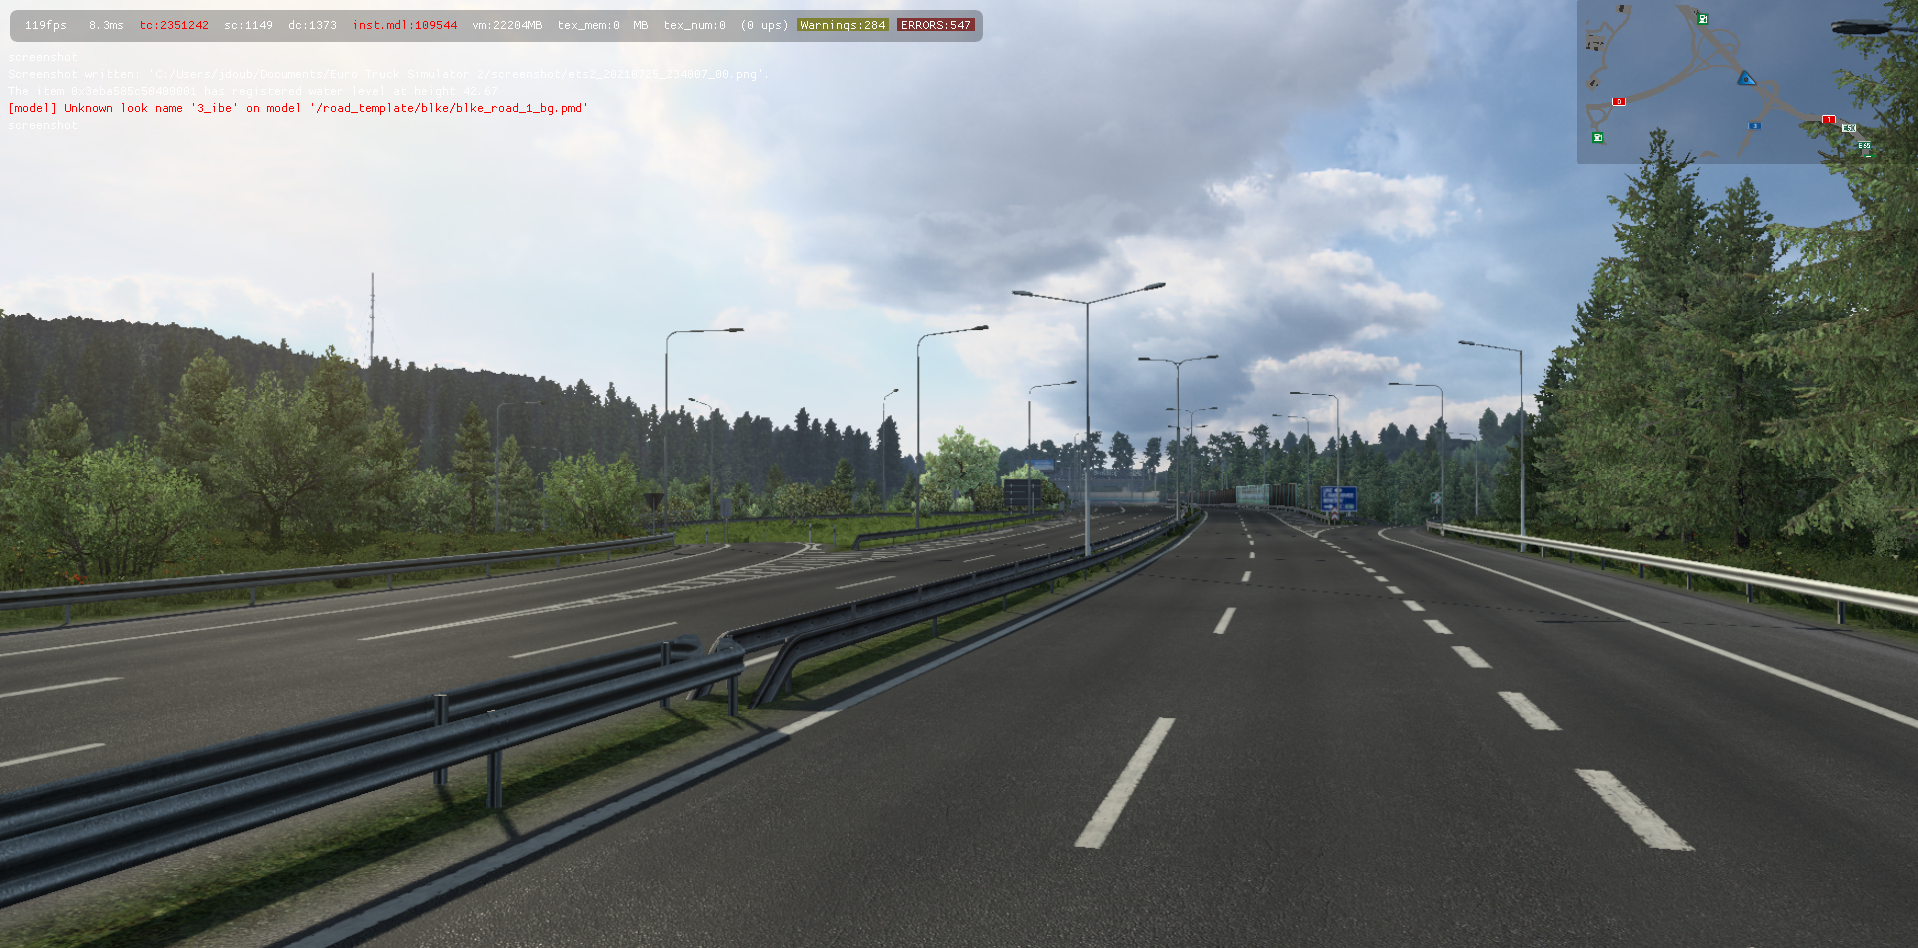 ets2_20210725_234030_00.png